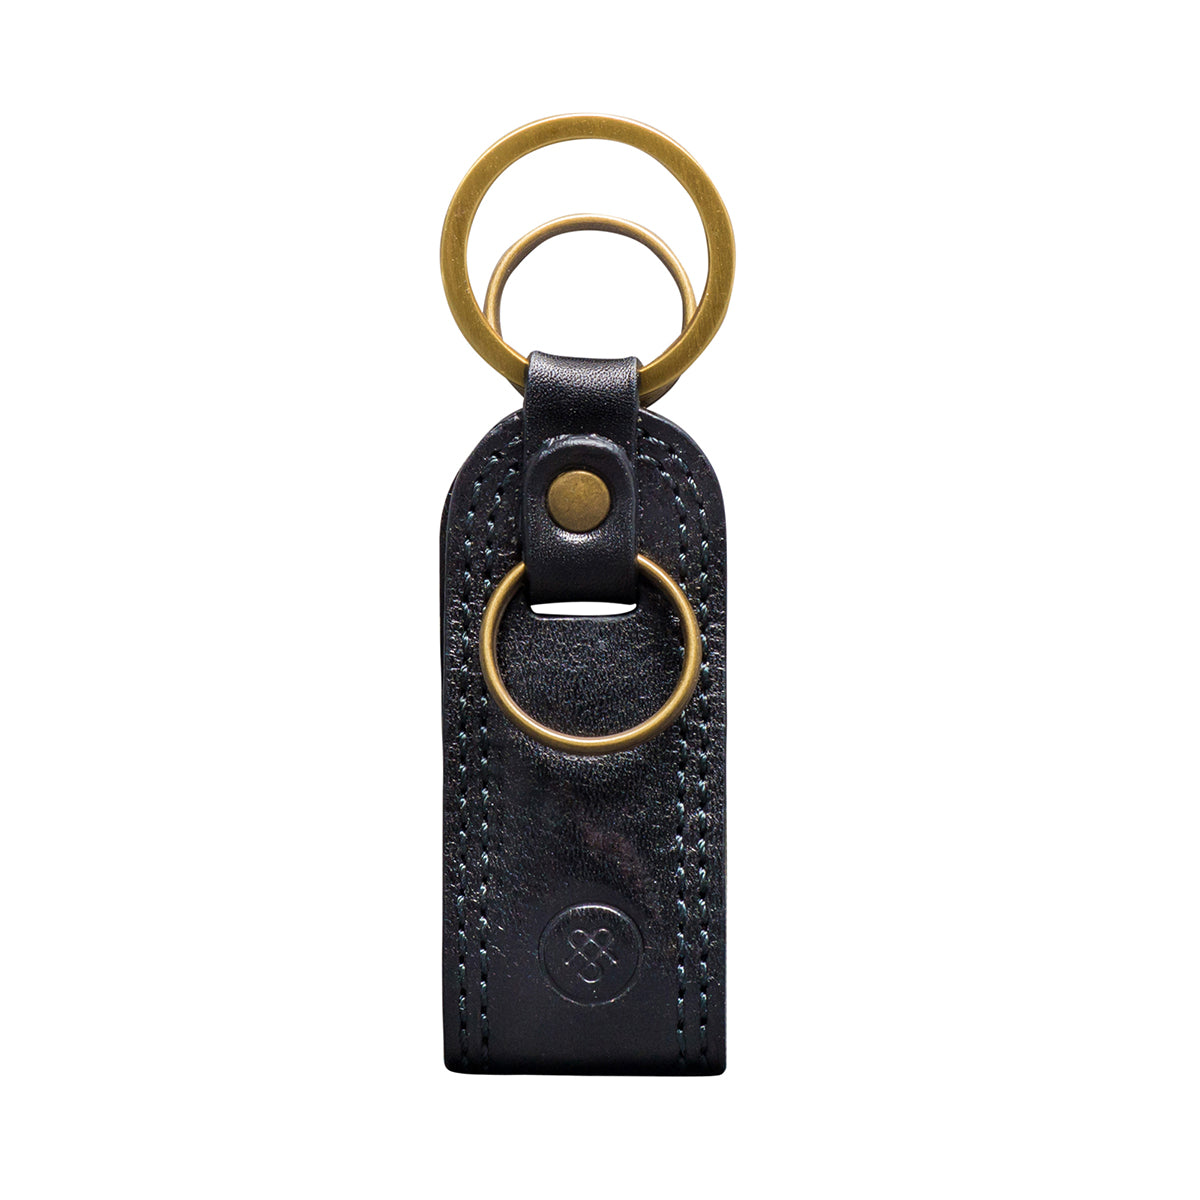 Image 1 of the 'Nepi' Black Veg-Tanned Leather Key Ring